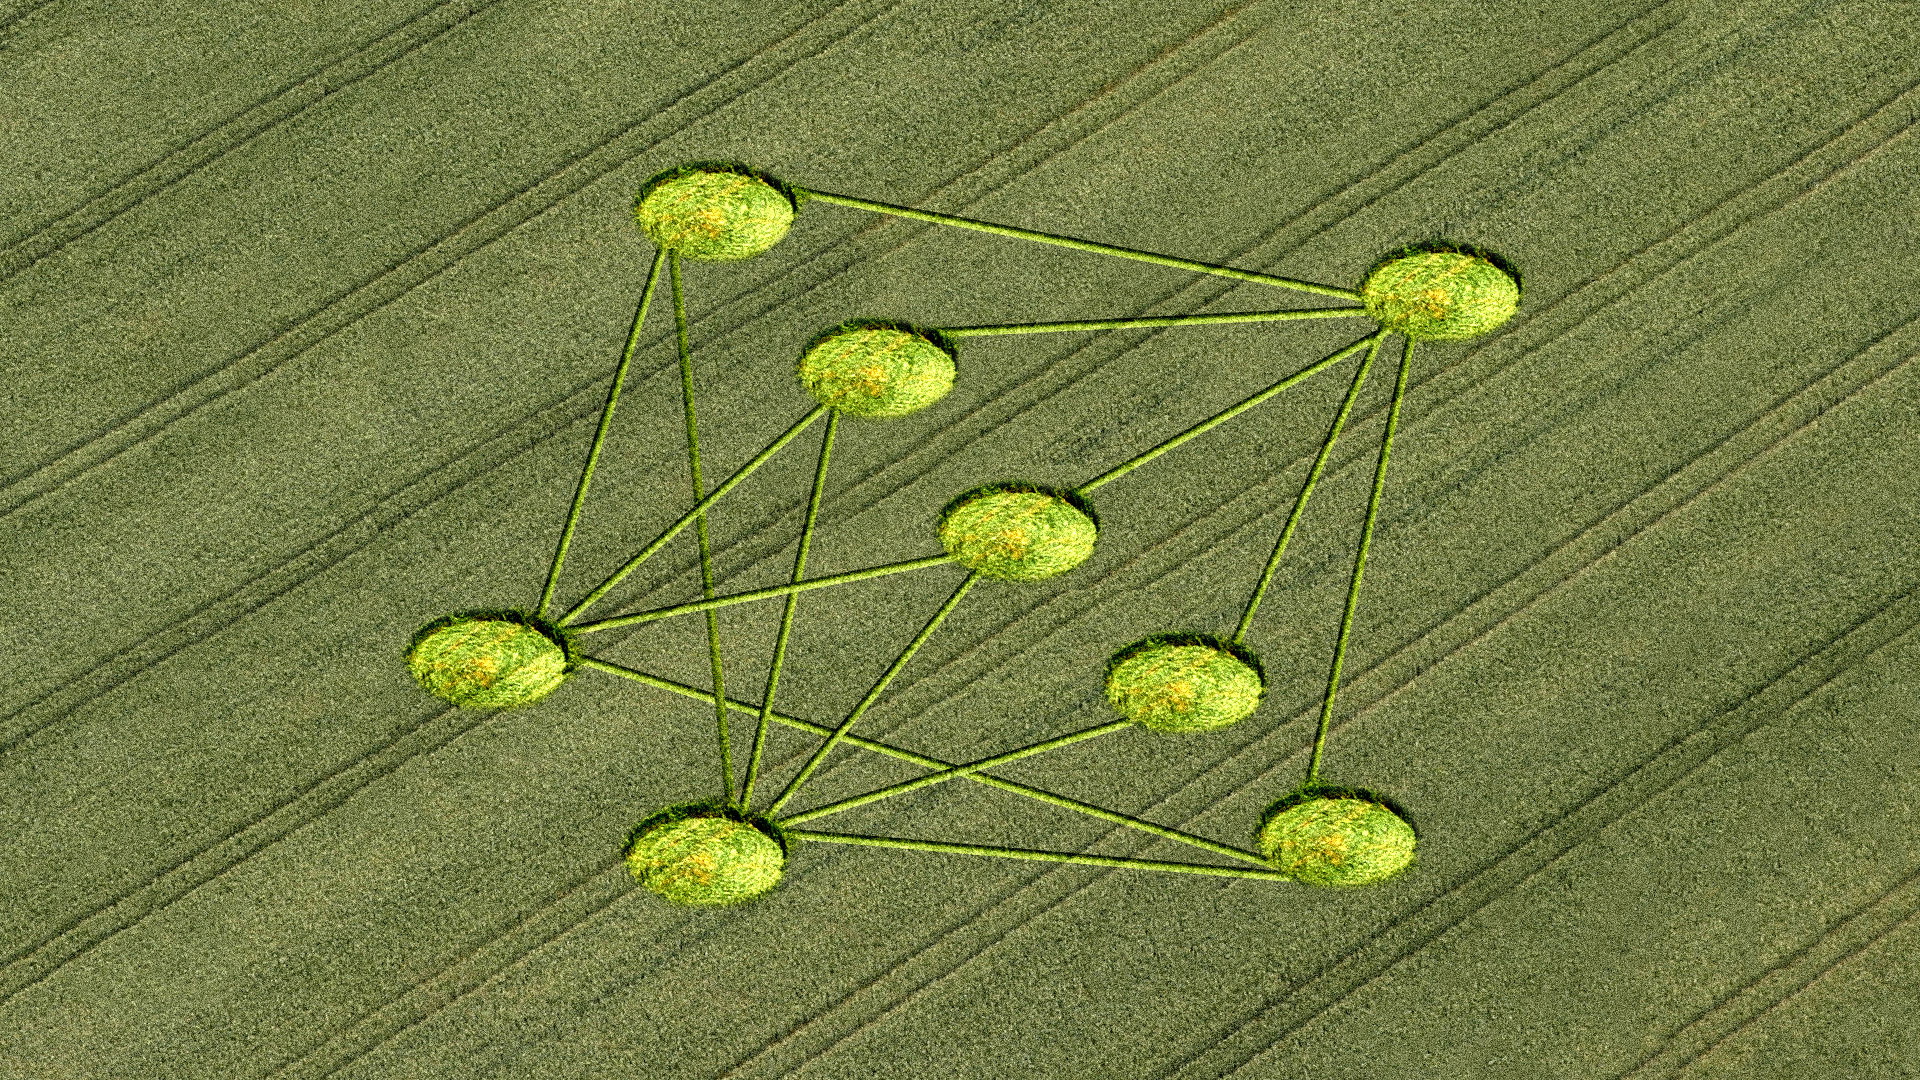 Illustration of field with nodes representing the application of AI in agriculture.